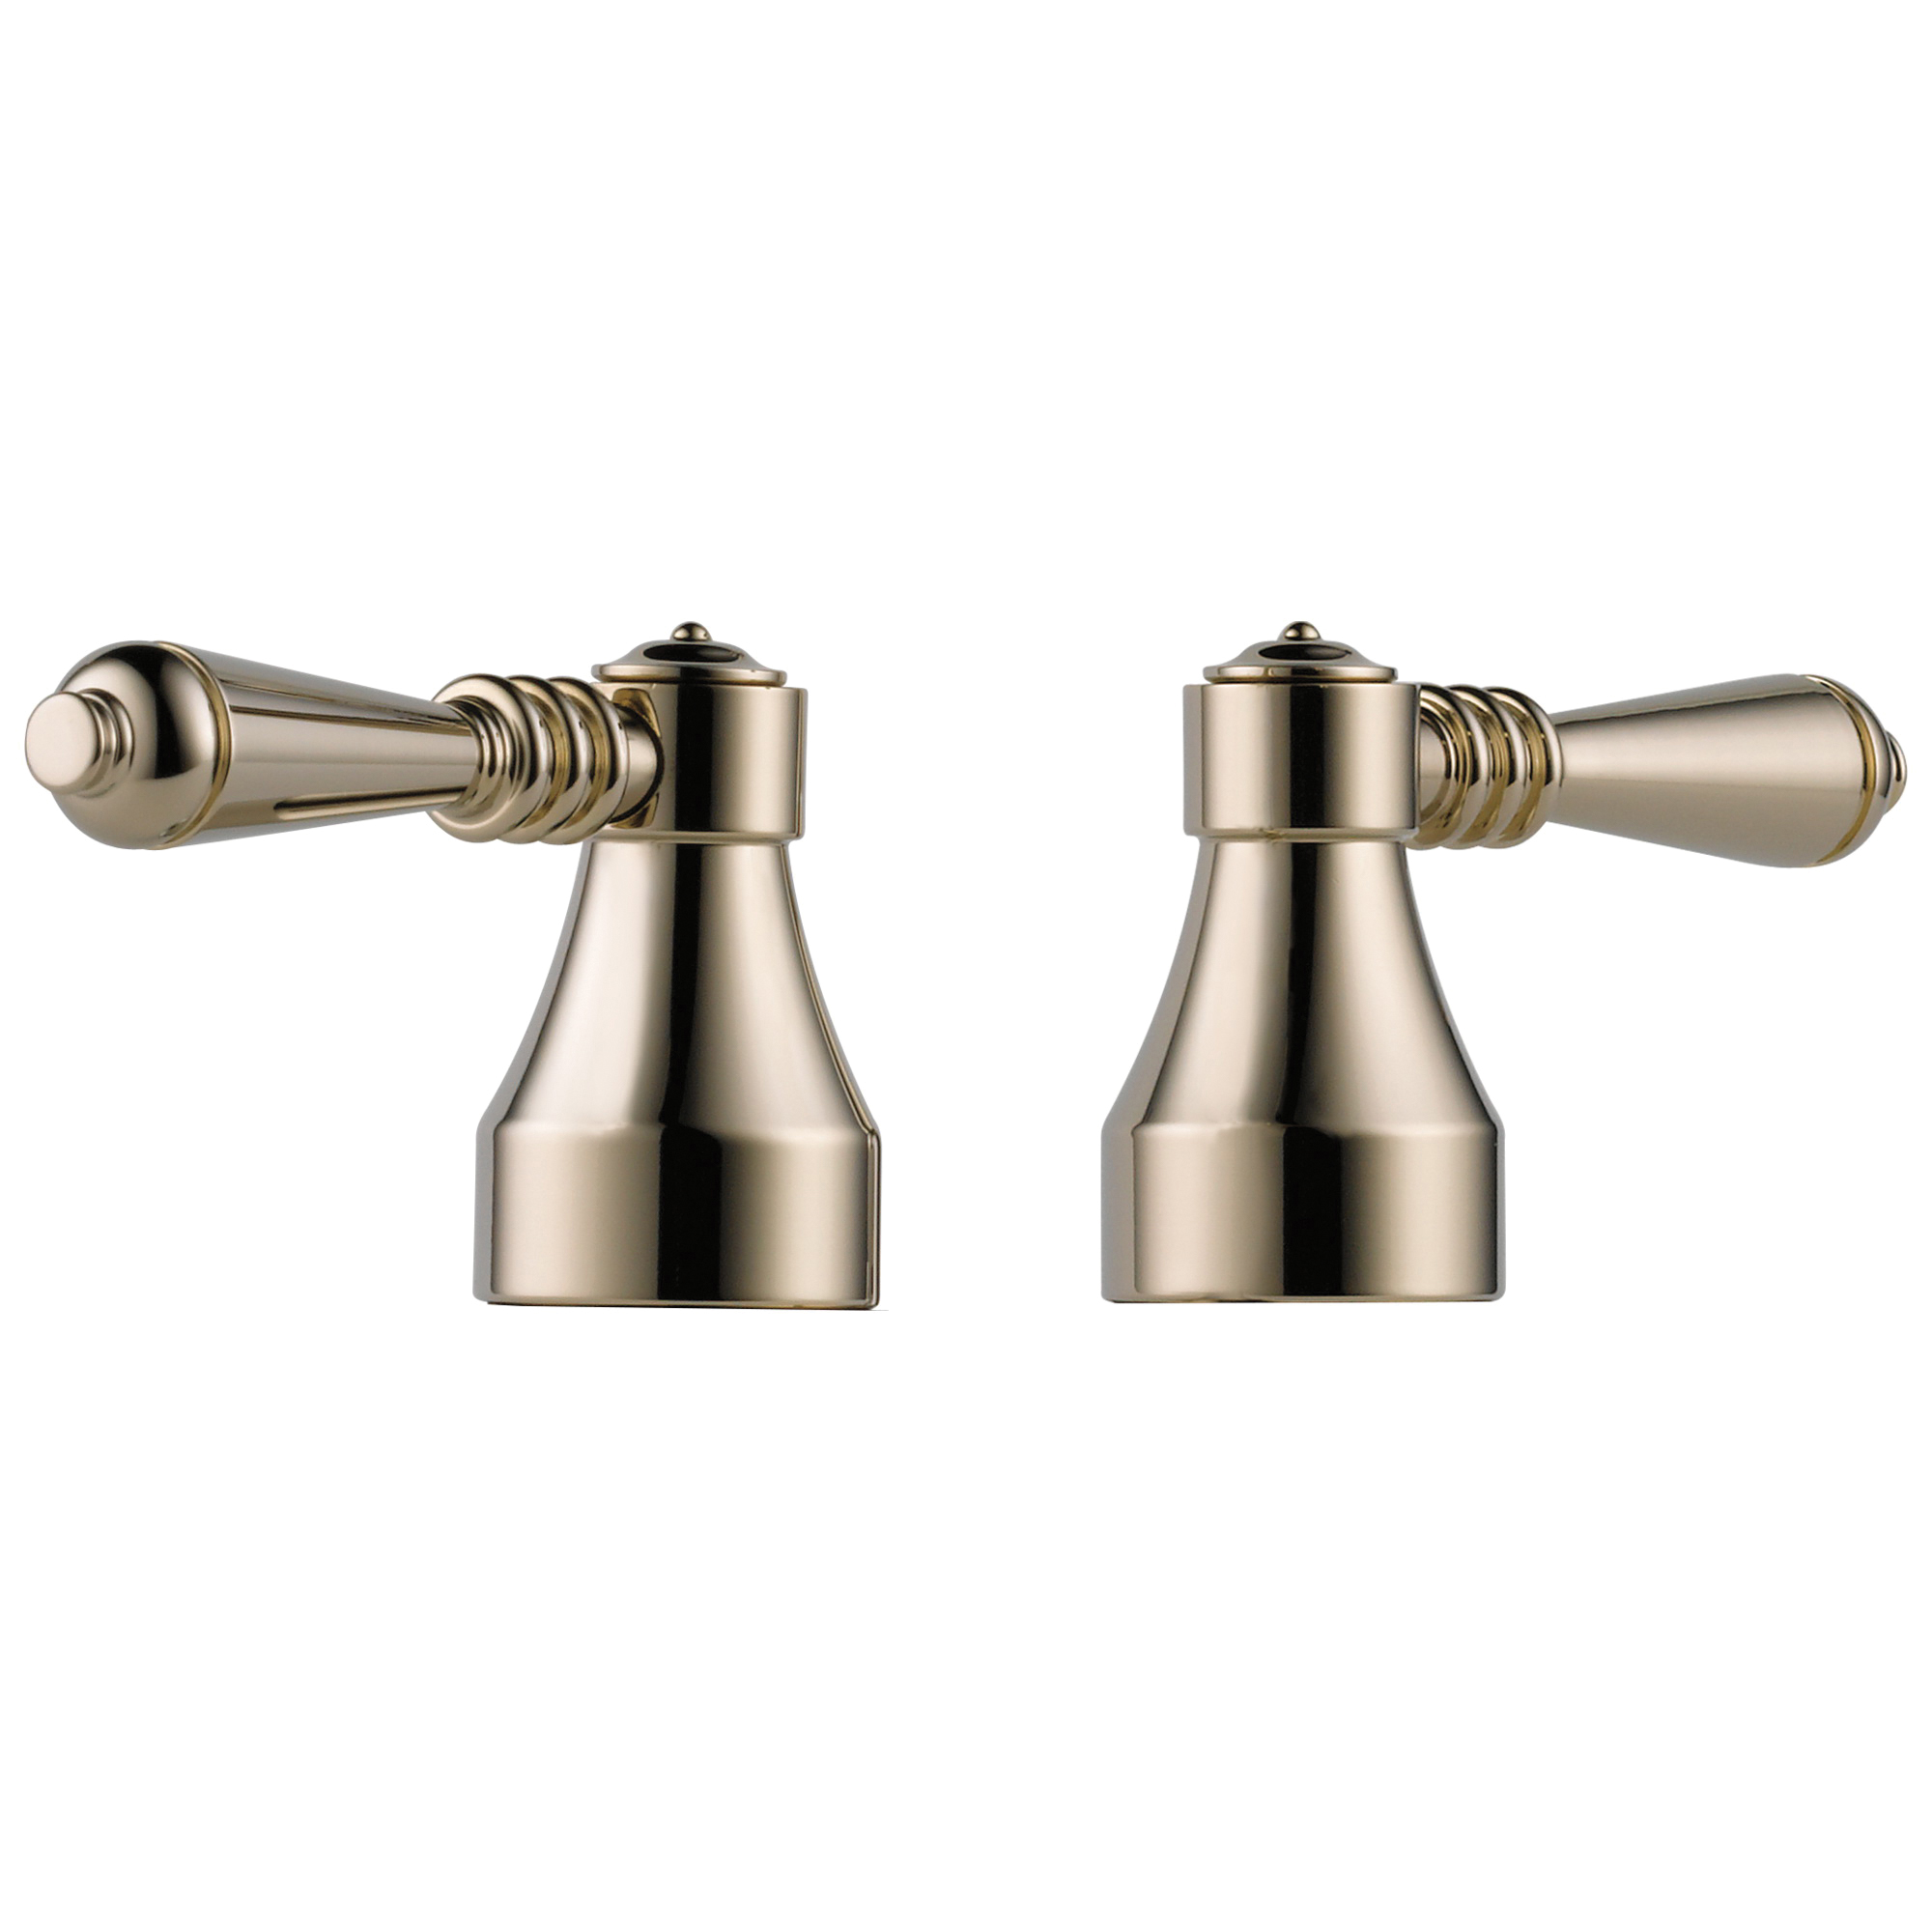 Brizo® RP52831PN Traditional® Single Lavatory Faucet Lever Handle Kit, Metal, Polished Nickel, Domestic